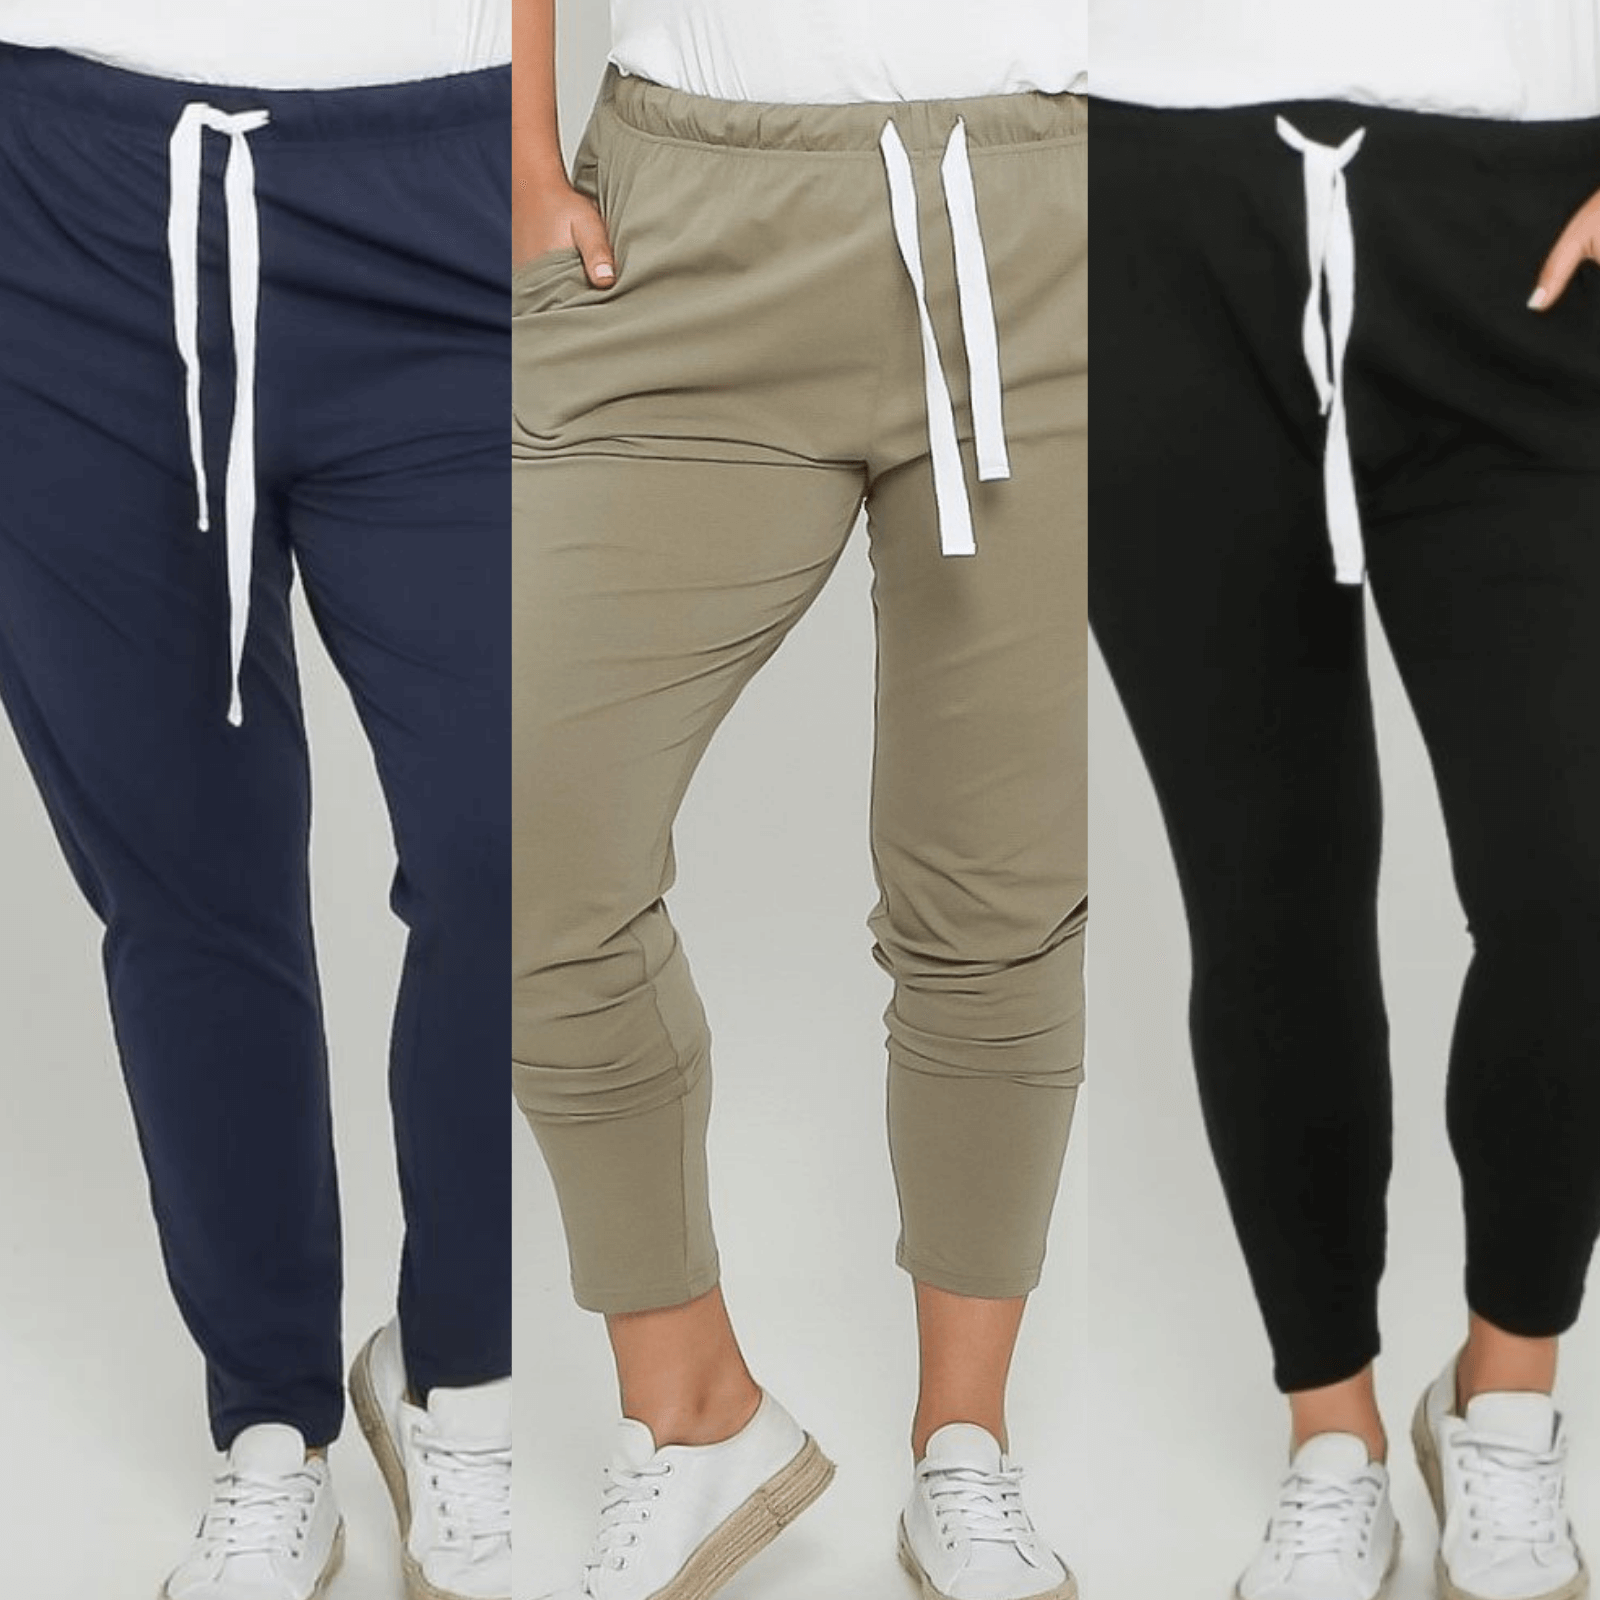 Emily Curve Joggers Three Pair Bundle - Navy, Khaki and Black